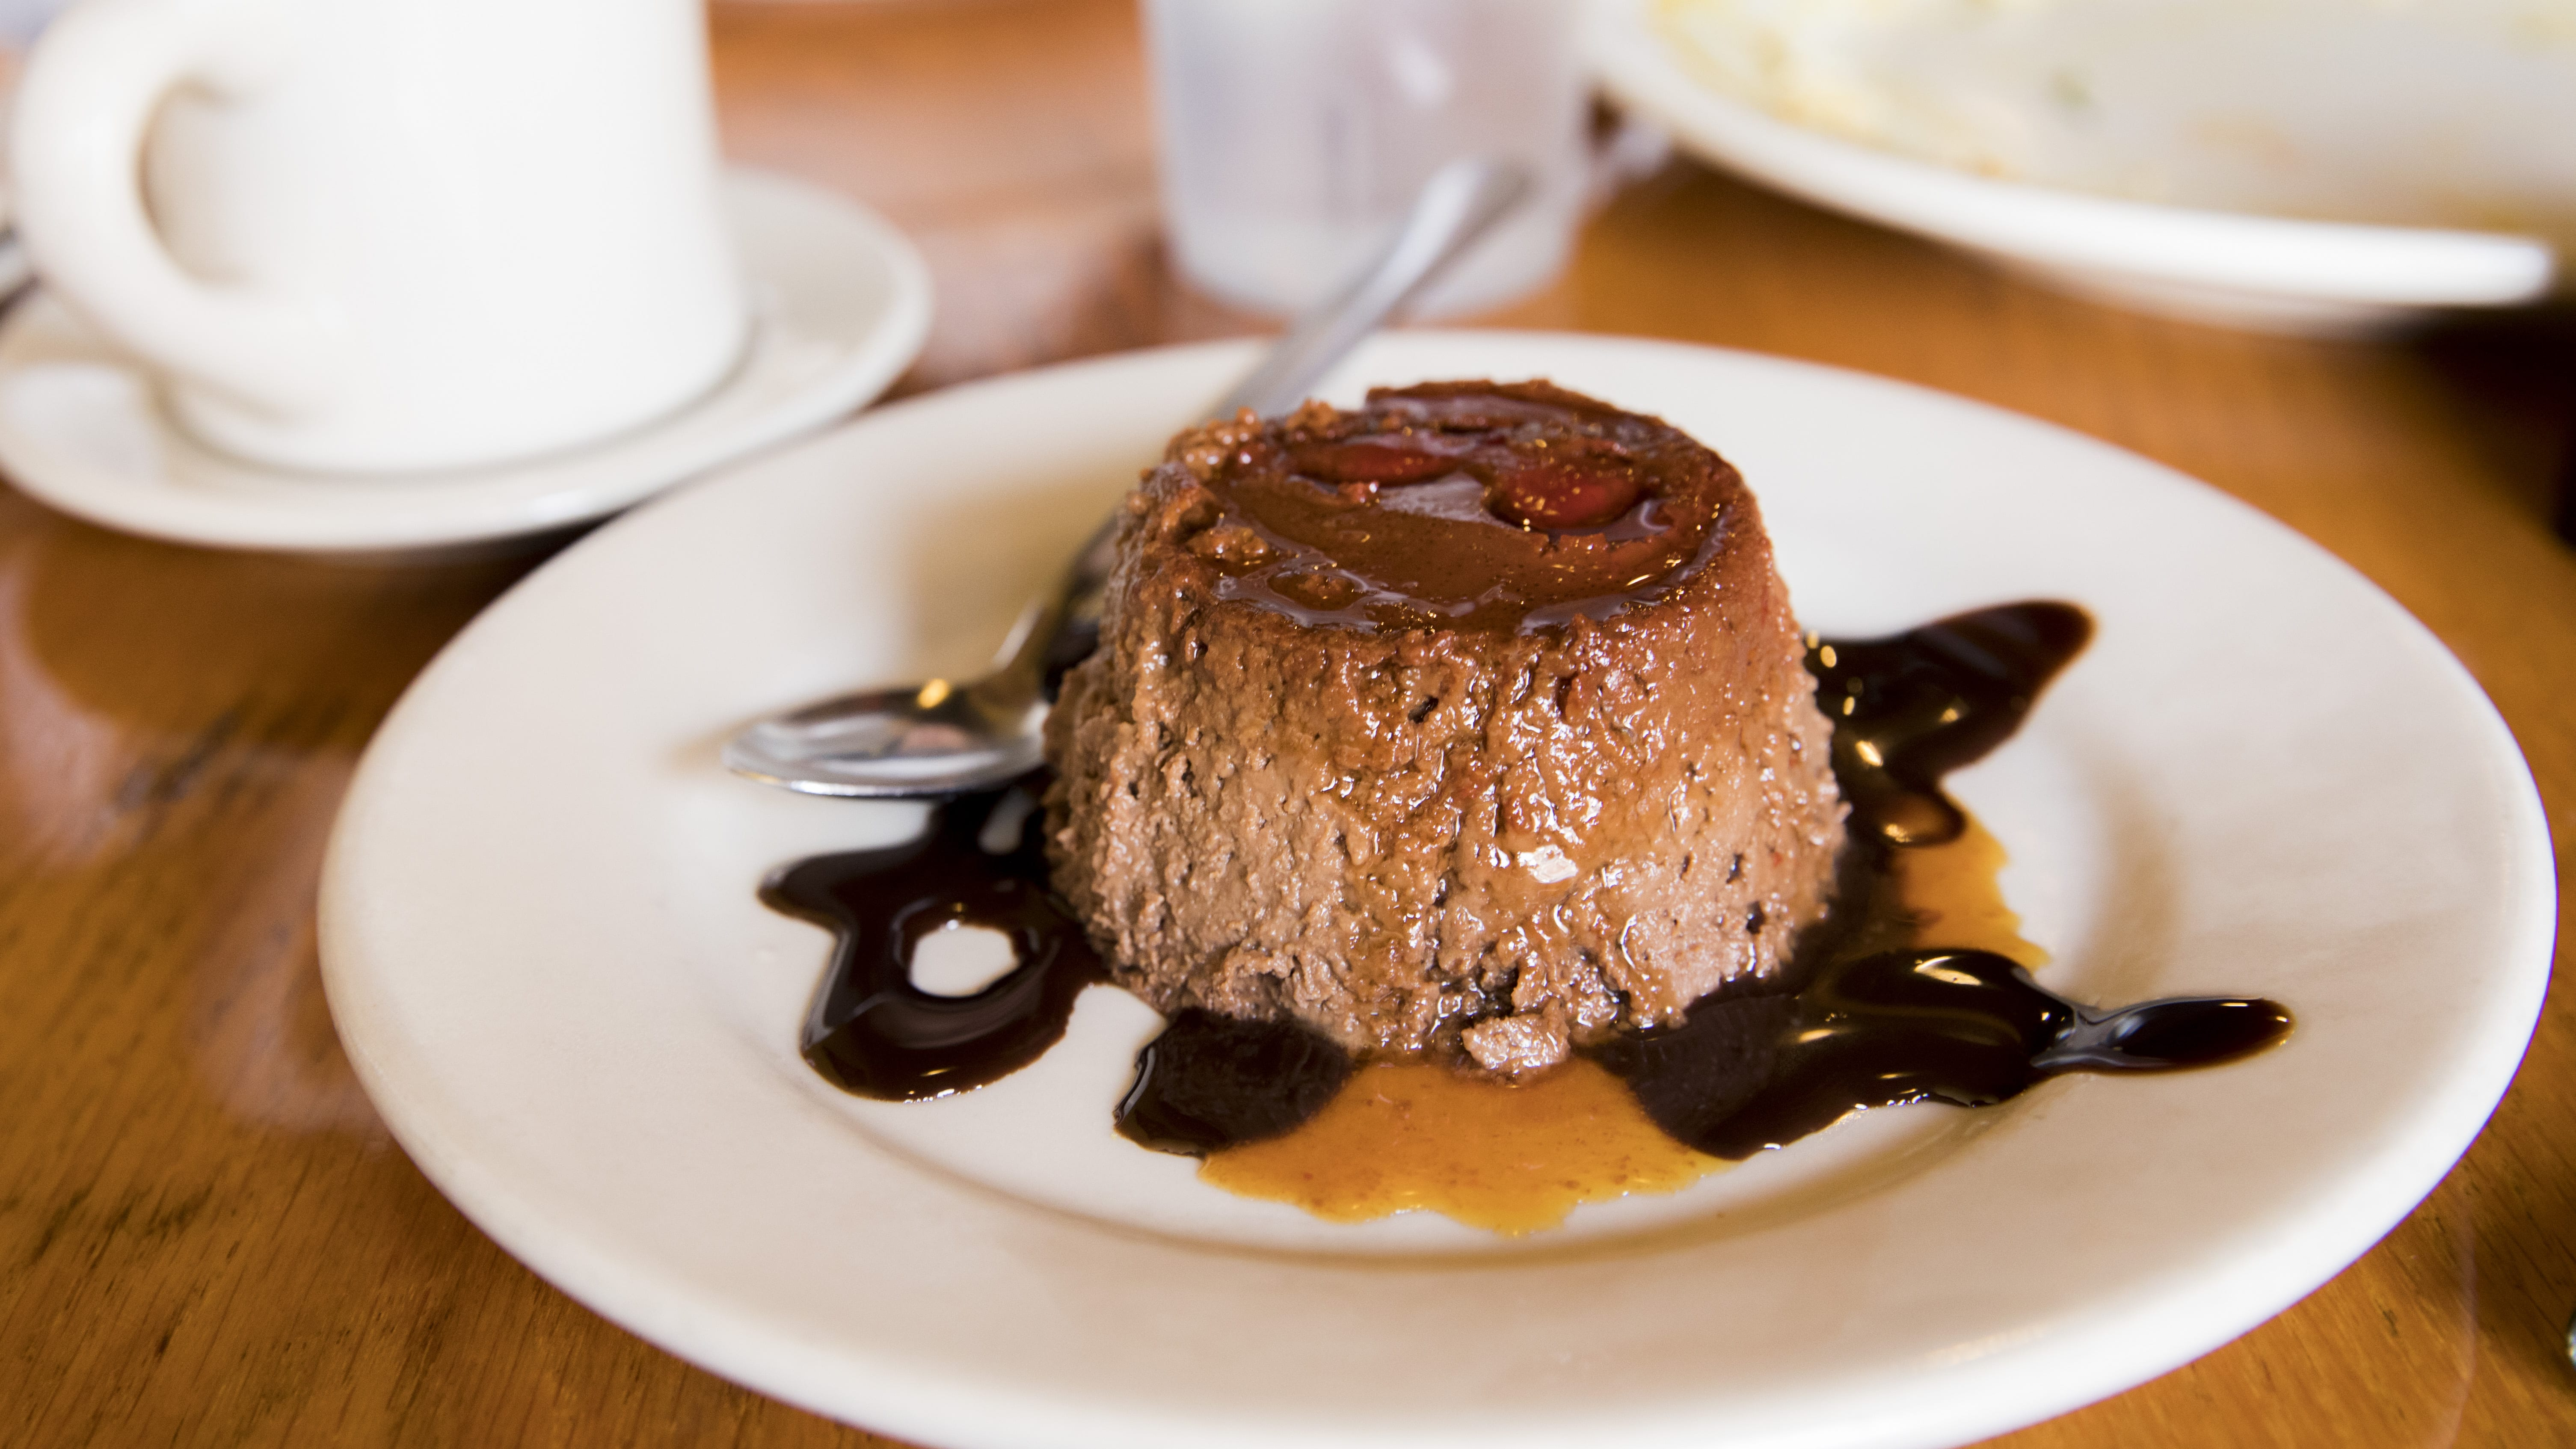 The intensely rich chocolate flan at Zen Zero